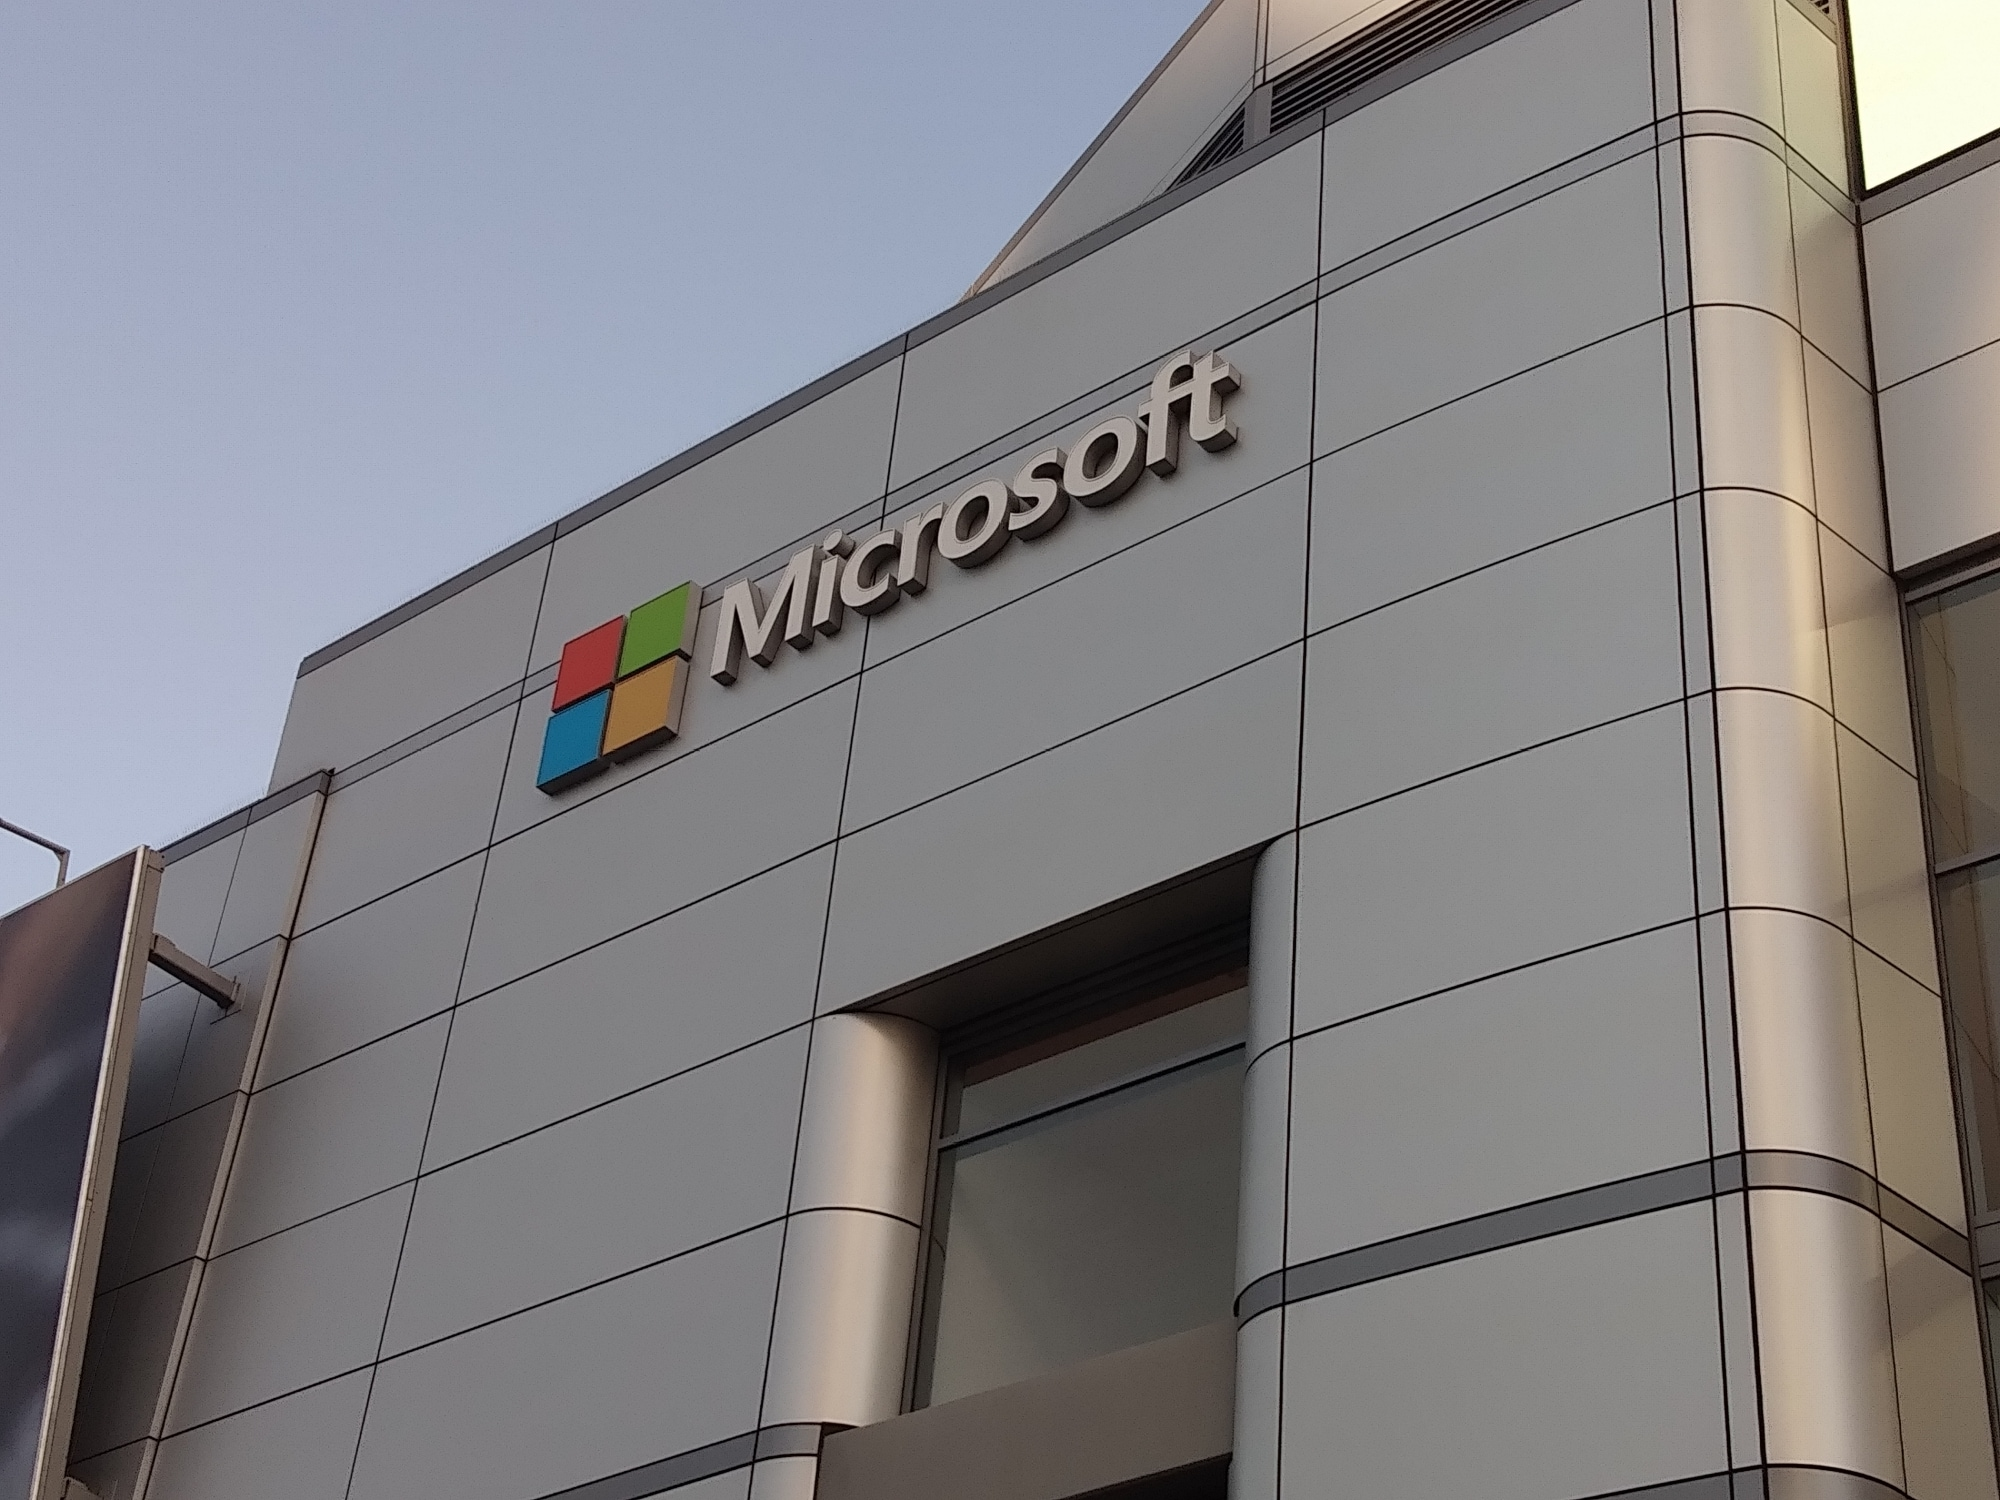 Reliance Jio Infocomm has partnered with Microsoft to bring its Azure cloud platform into Jio's data centers across India. The two companies will offer comprehensive technology solutions from computing and storage to connectivity and productivity to small and medium businesses in the country. (Image: IANS)